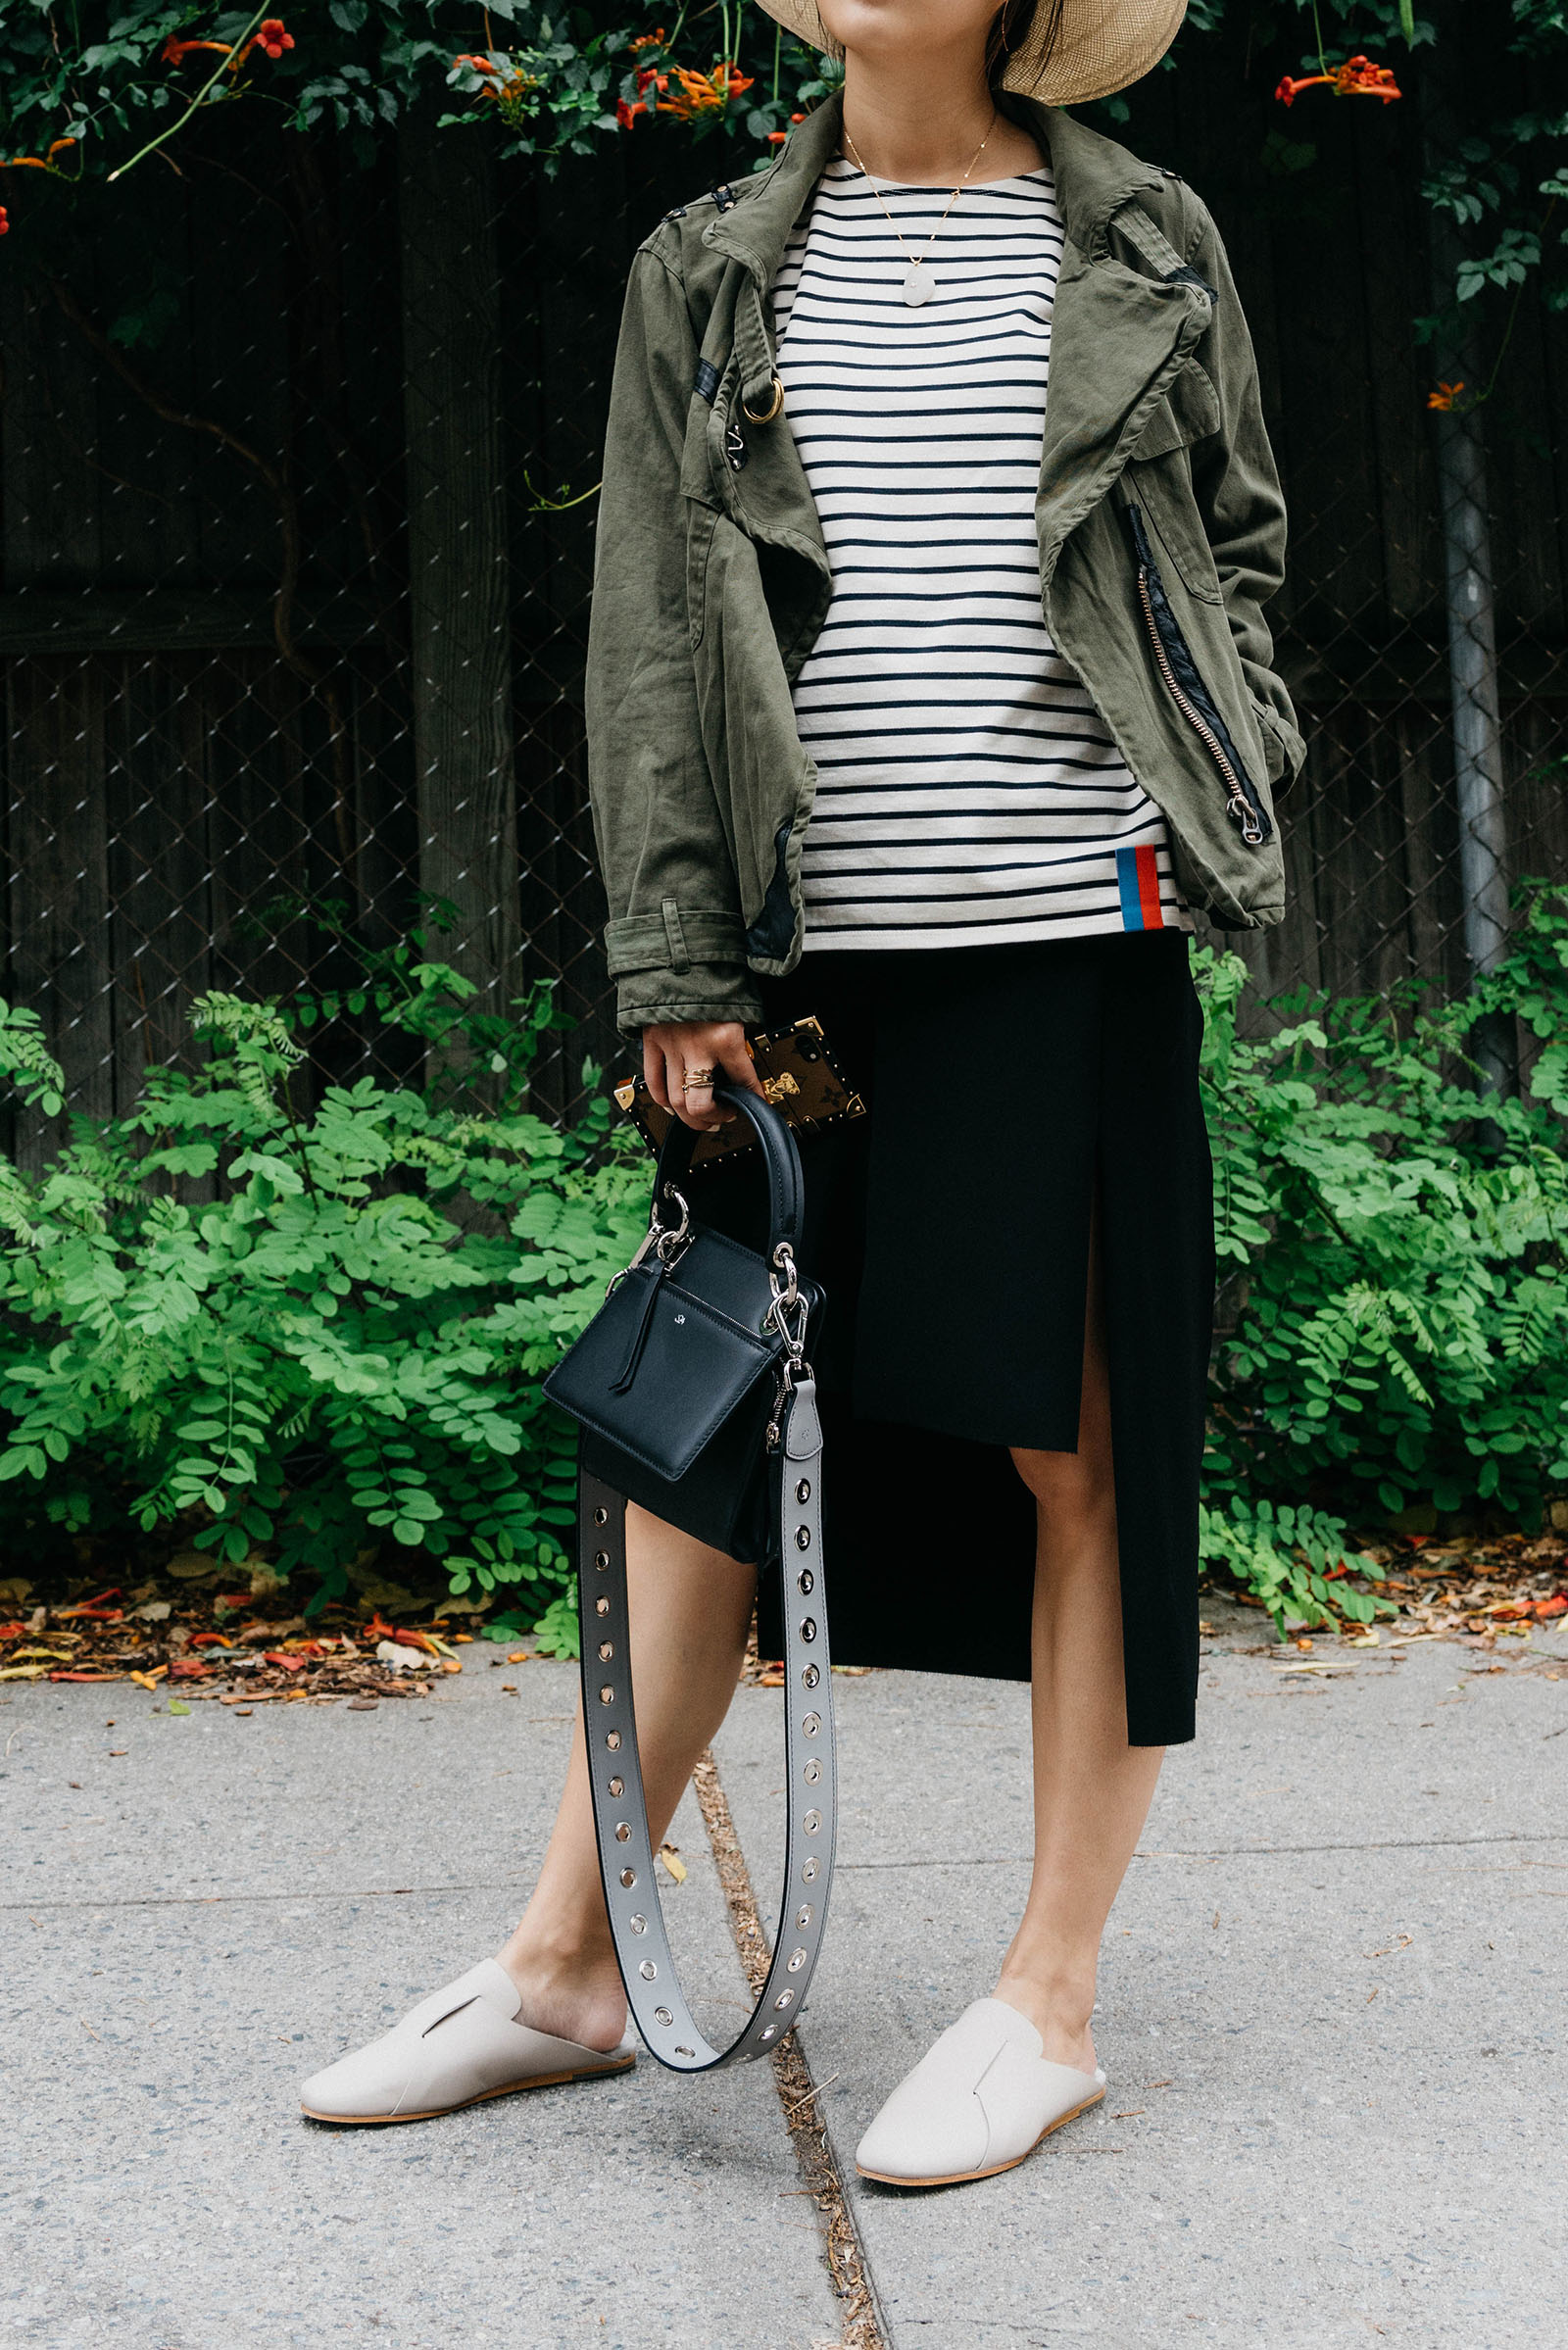 NSF Jacket ,  Kule Stripes Top , COS Skirt and Shoes,  324 New York Bag  and  Strap